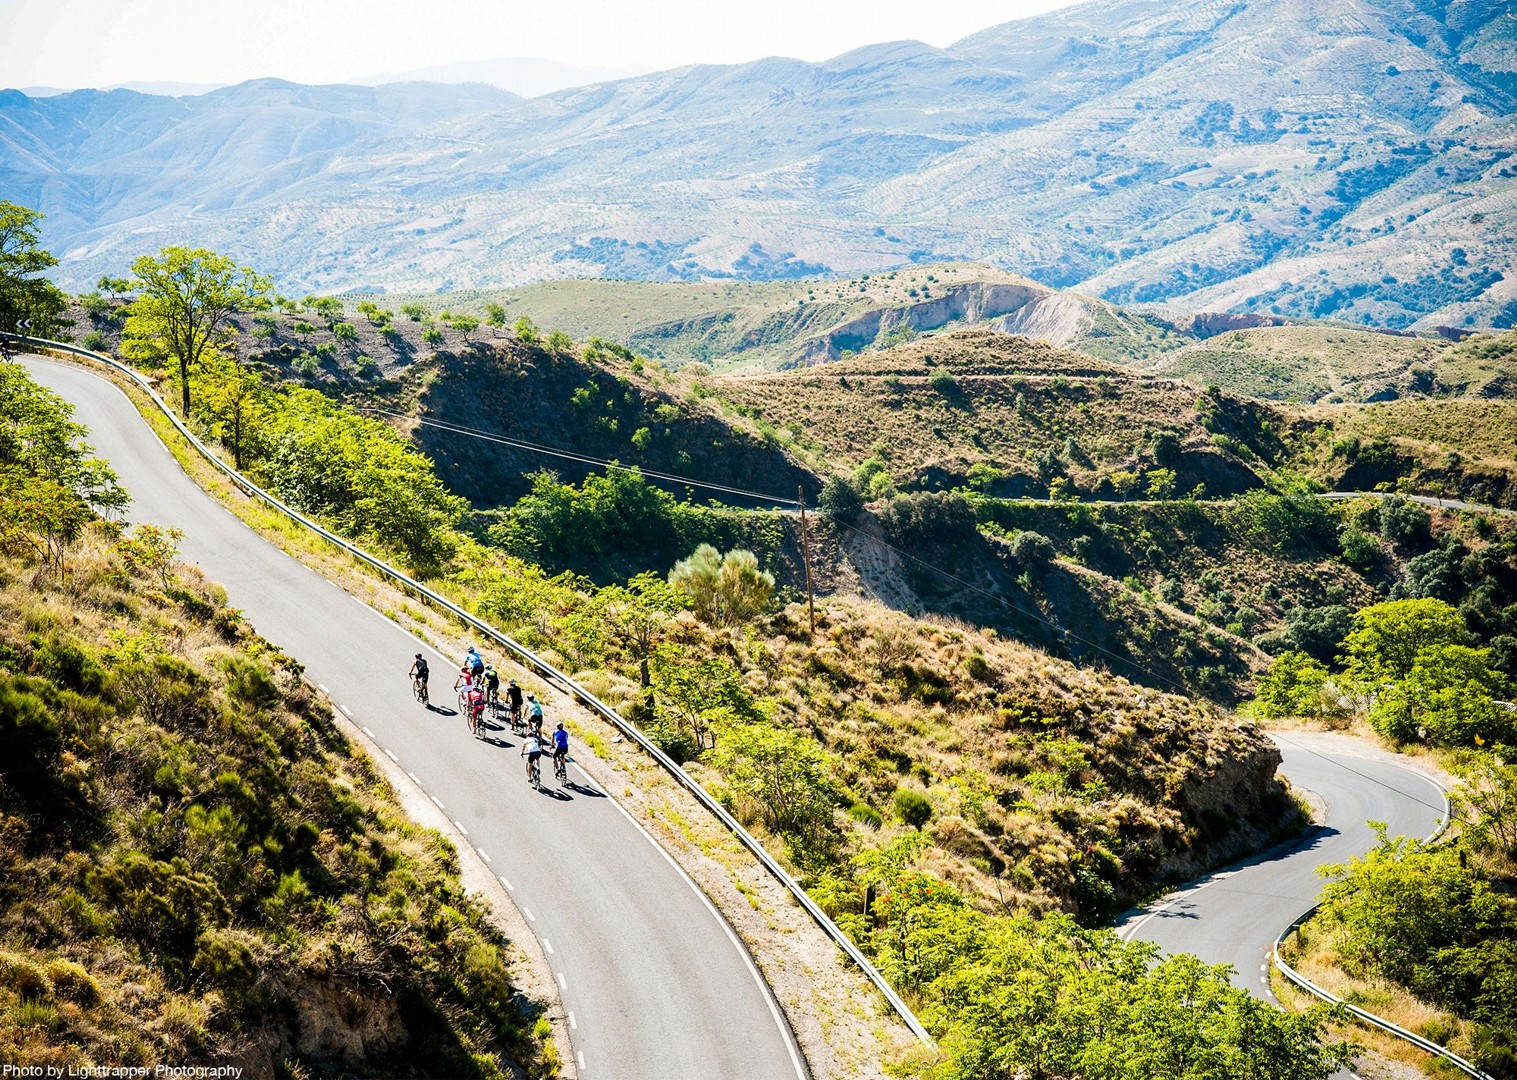 southern-spain-sierra-nevada-and-granada-guided-cycling-holiday.jpg - Southern Spain - Sierra Nevada and Granada - Guided Road Cycling Holiday - Road Cycling